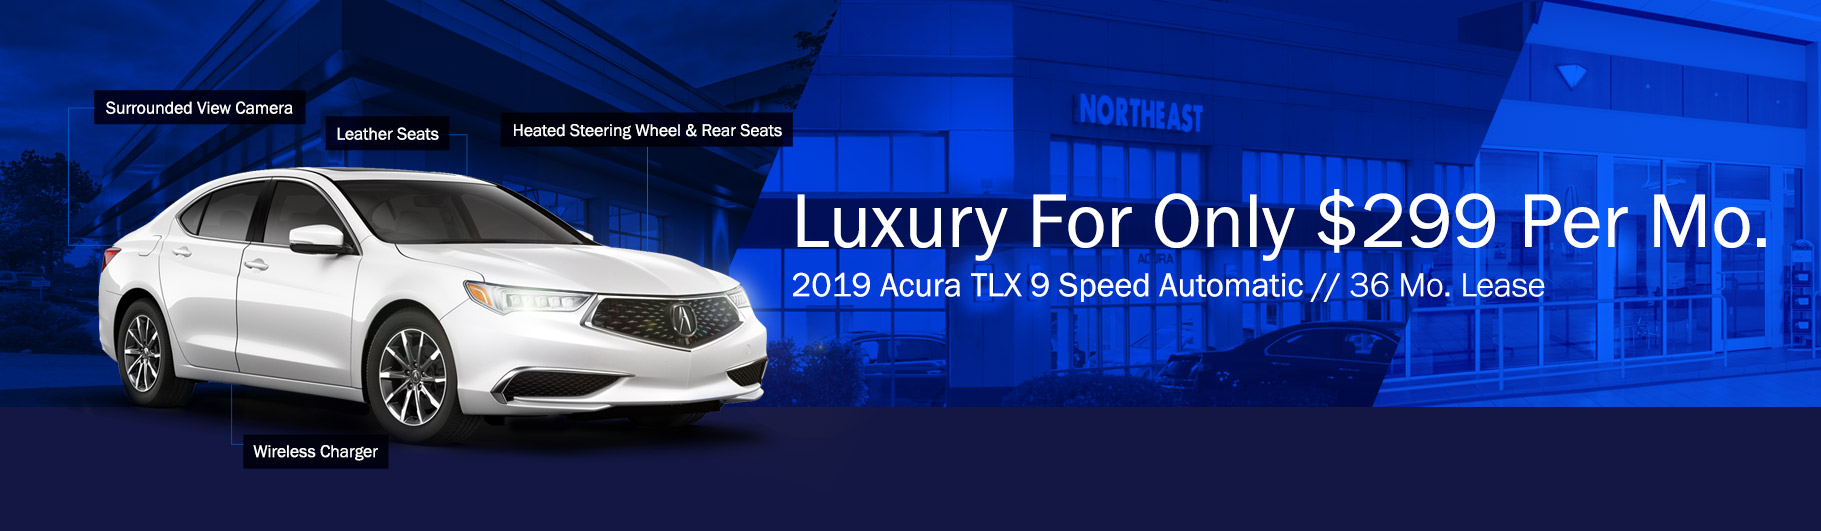 2019 Acura TLX 9 Speed Automatic - Lease for $299 per month for 36 months. Surrounded View Camera, Leather Seats, Heated Steering Wheel & Rear Seats, Wireless Charger